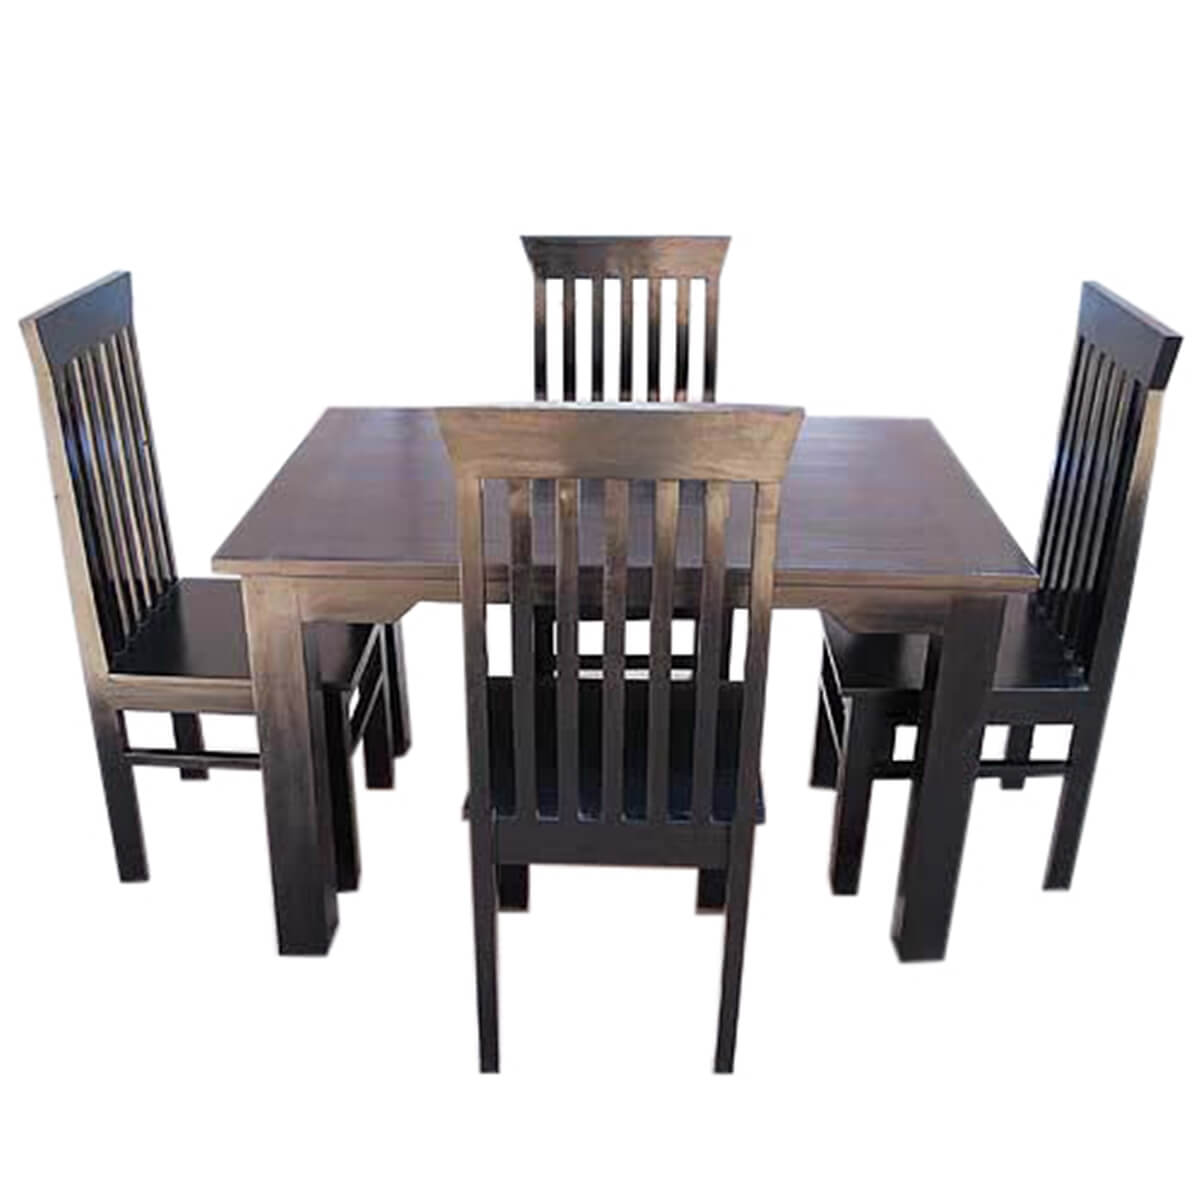 Contemporary lincoln kitchen dining room table chairs set for Dining room table chairs